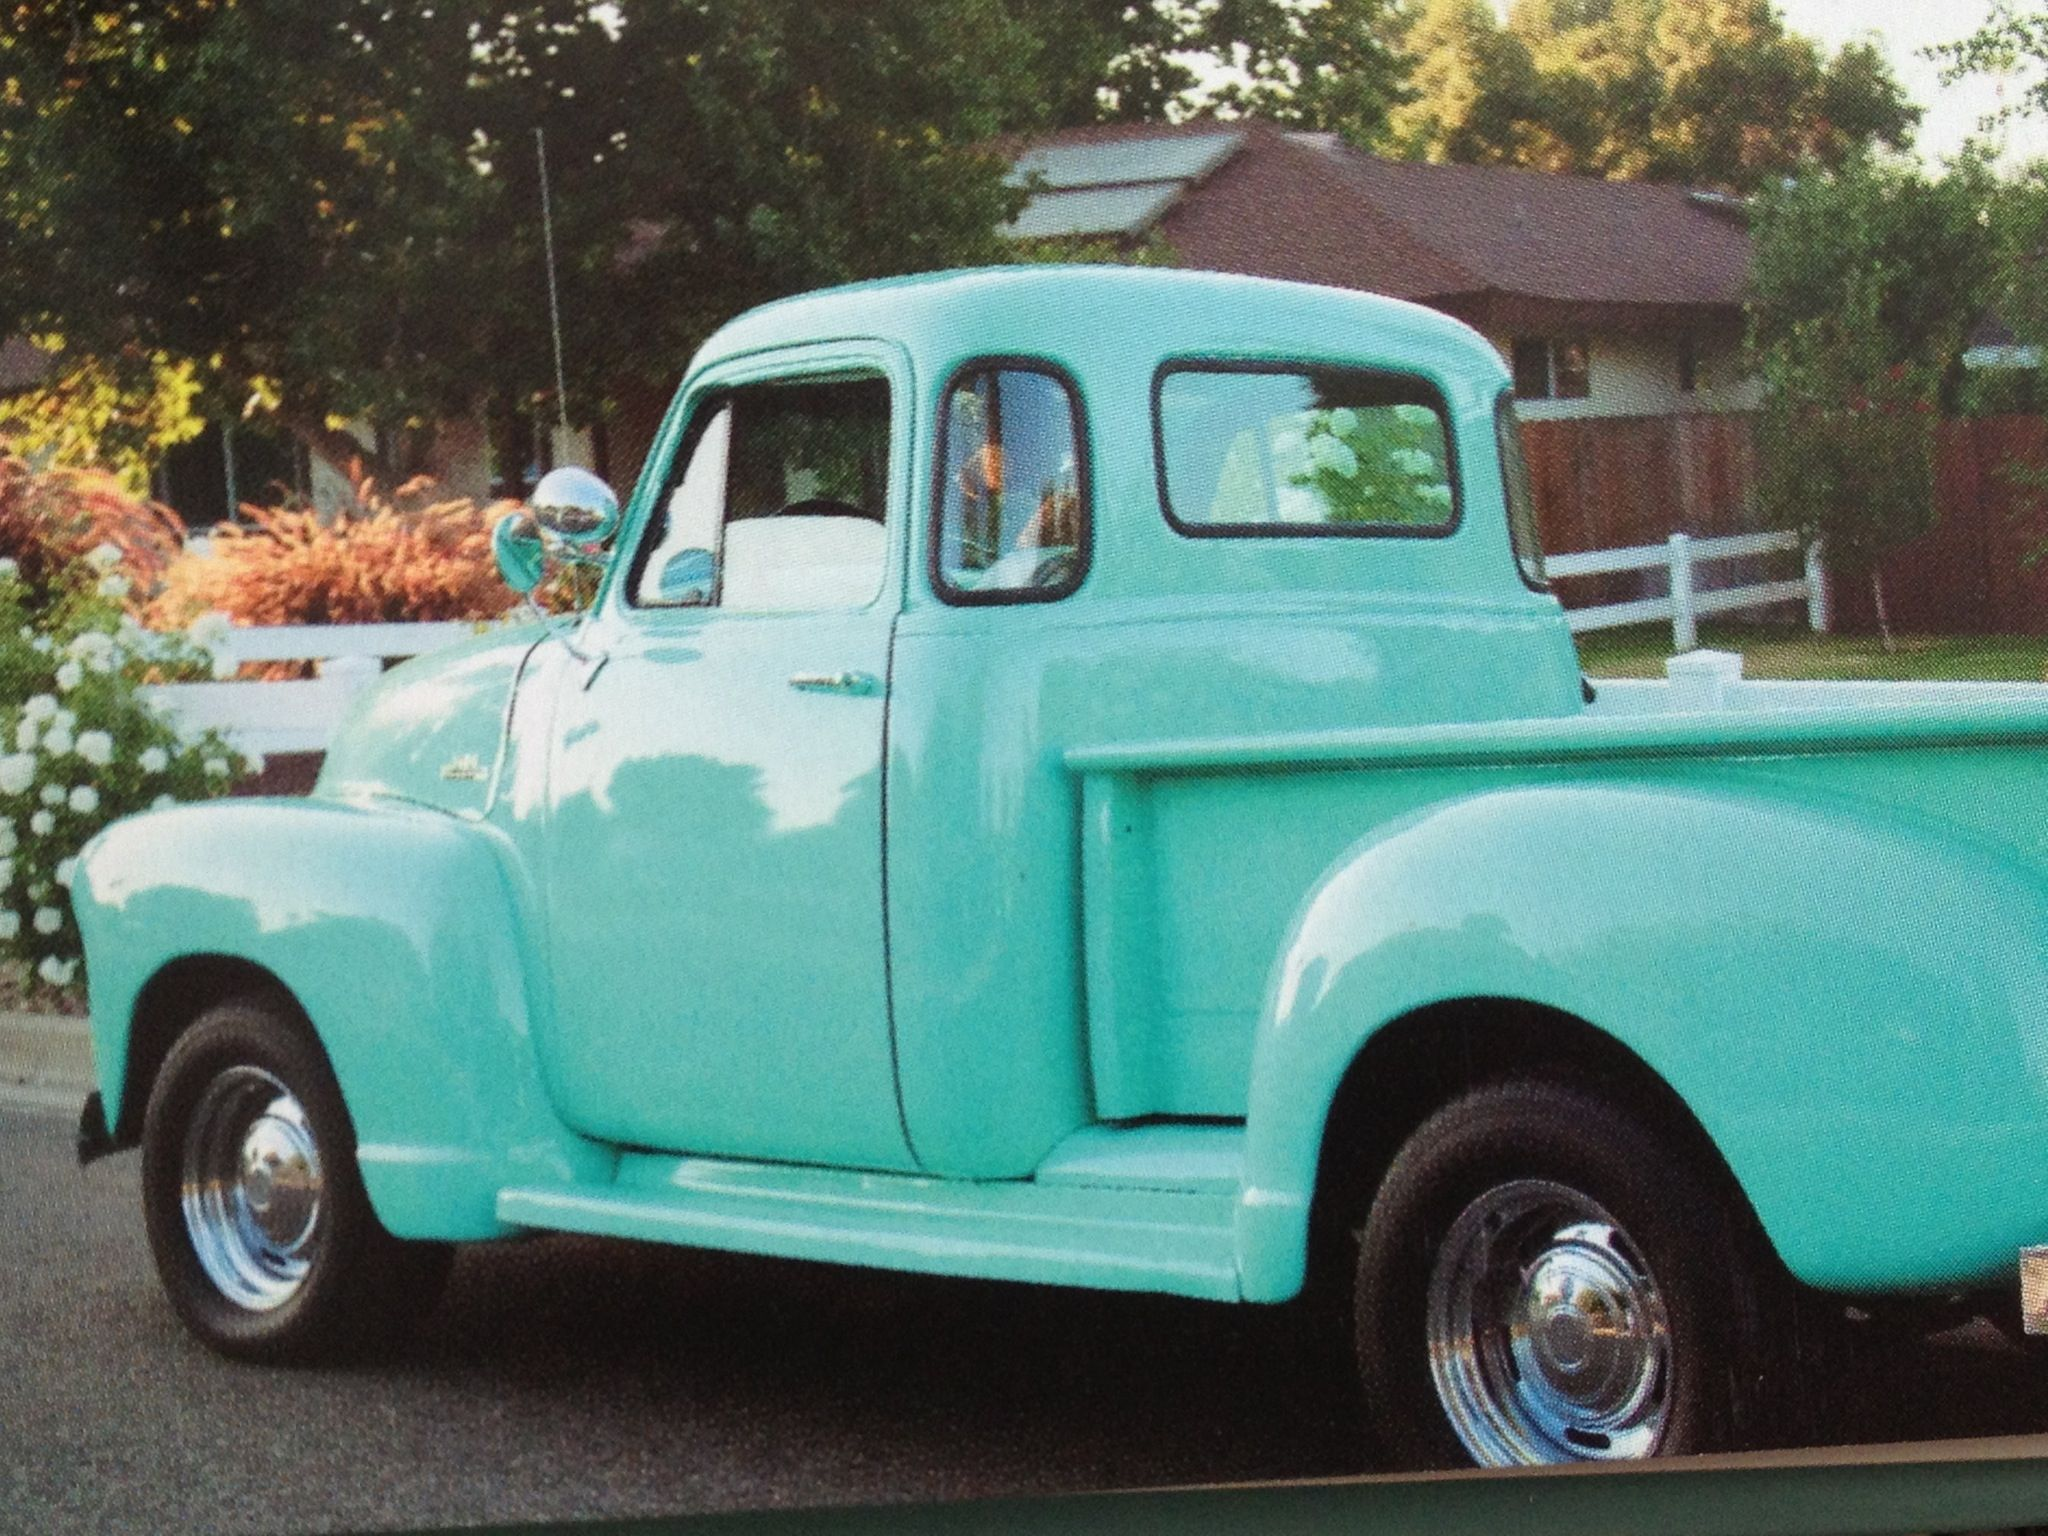 Turquoise classic truck - pictured in Romantic Prairie Style by Fifi ...